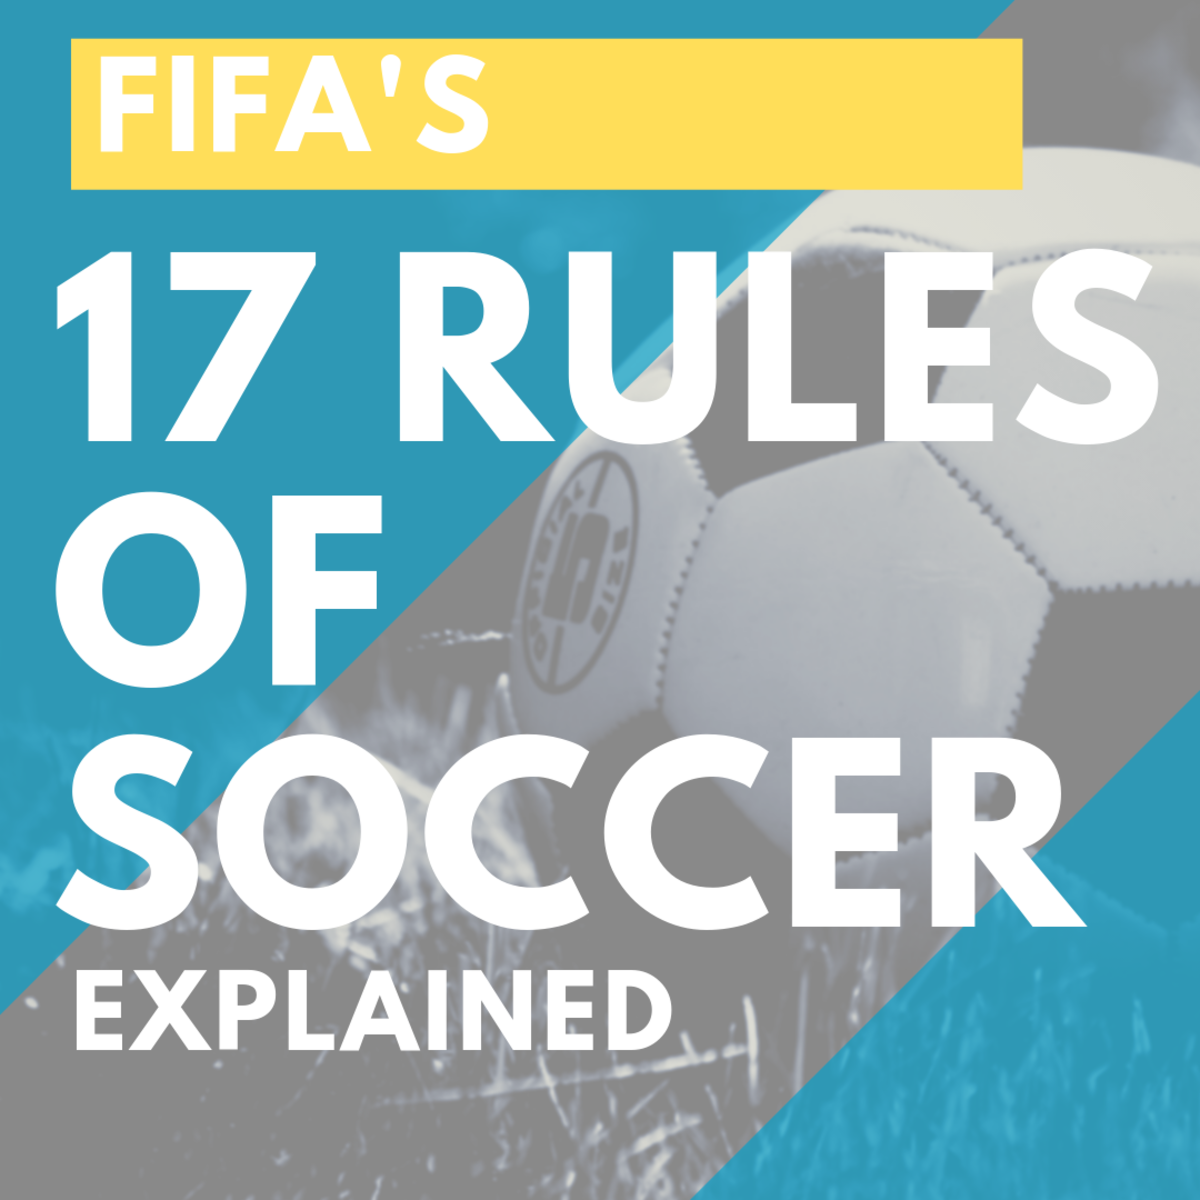 FIFA's 17 Laws of Soccer Explained